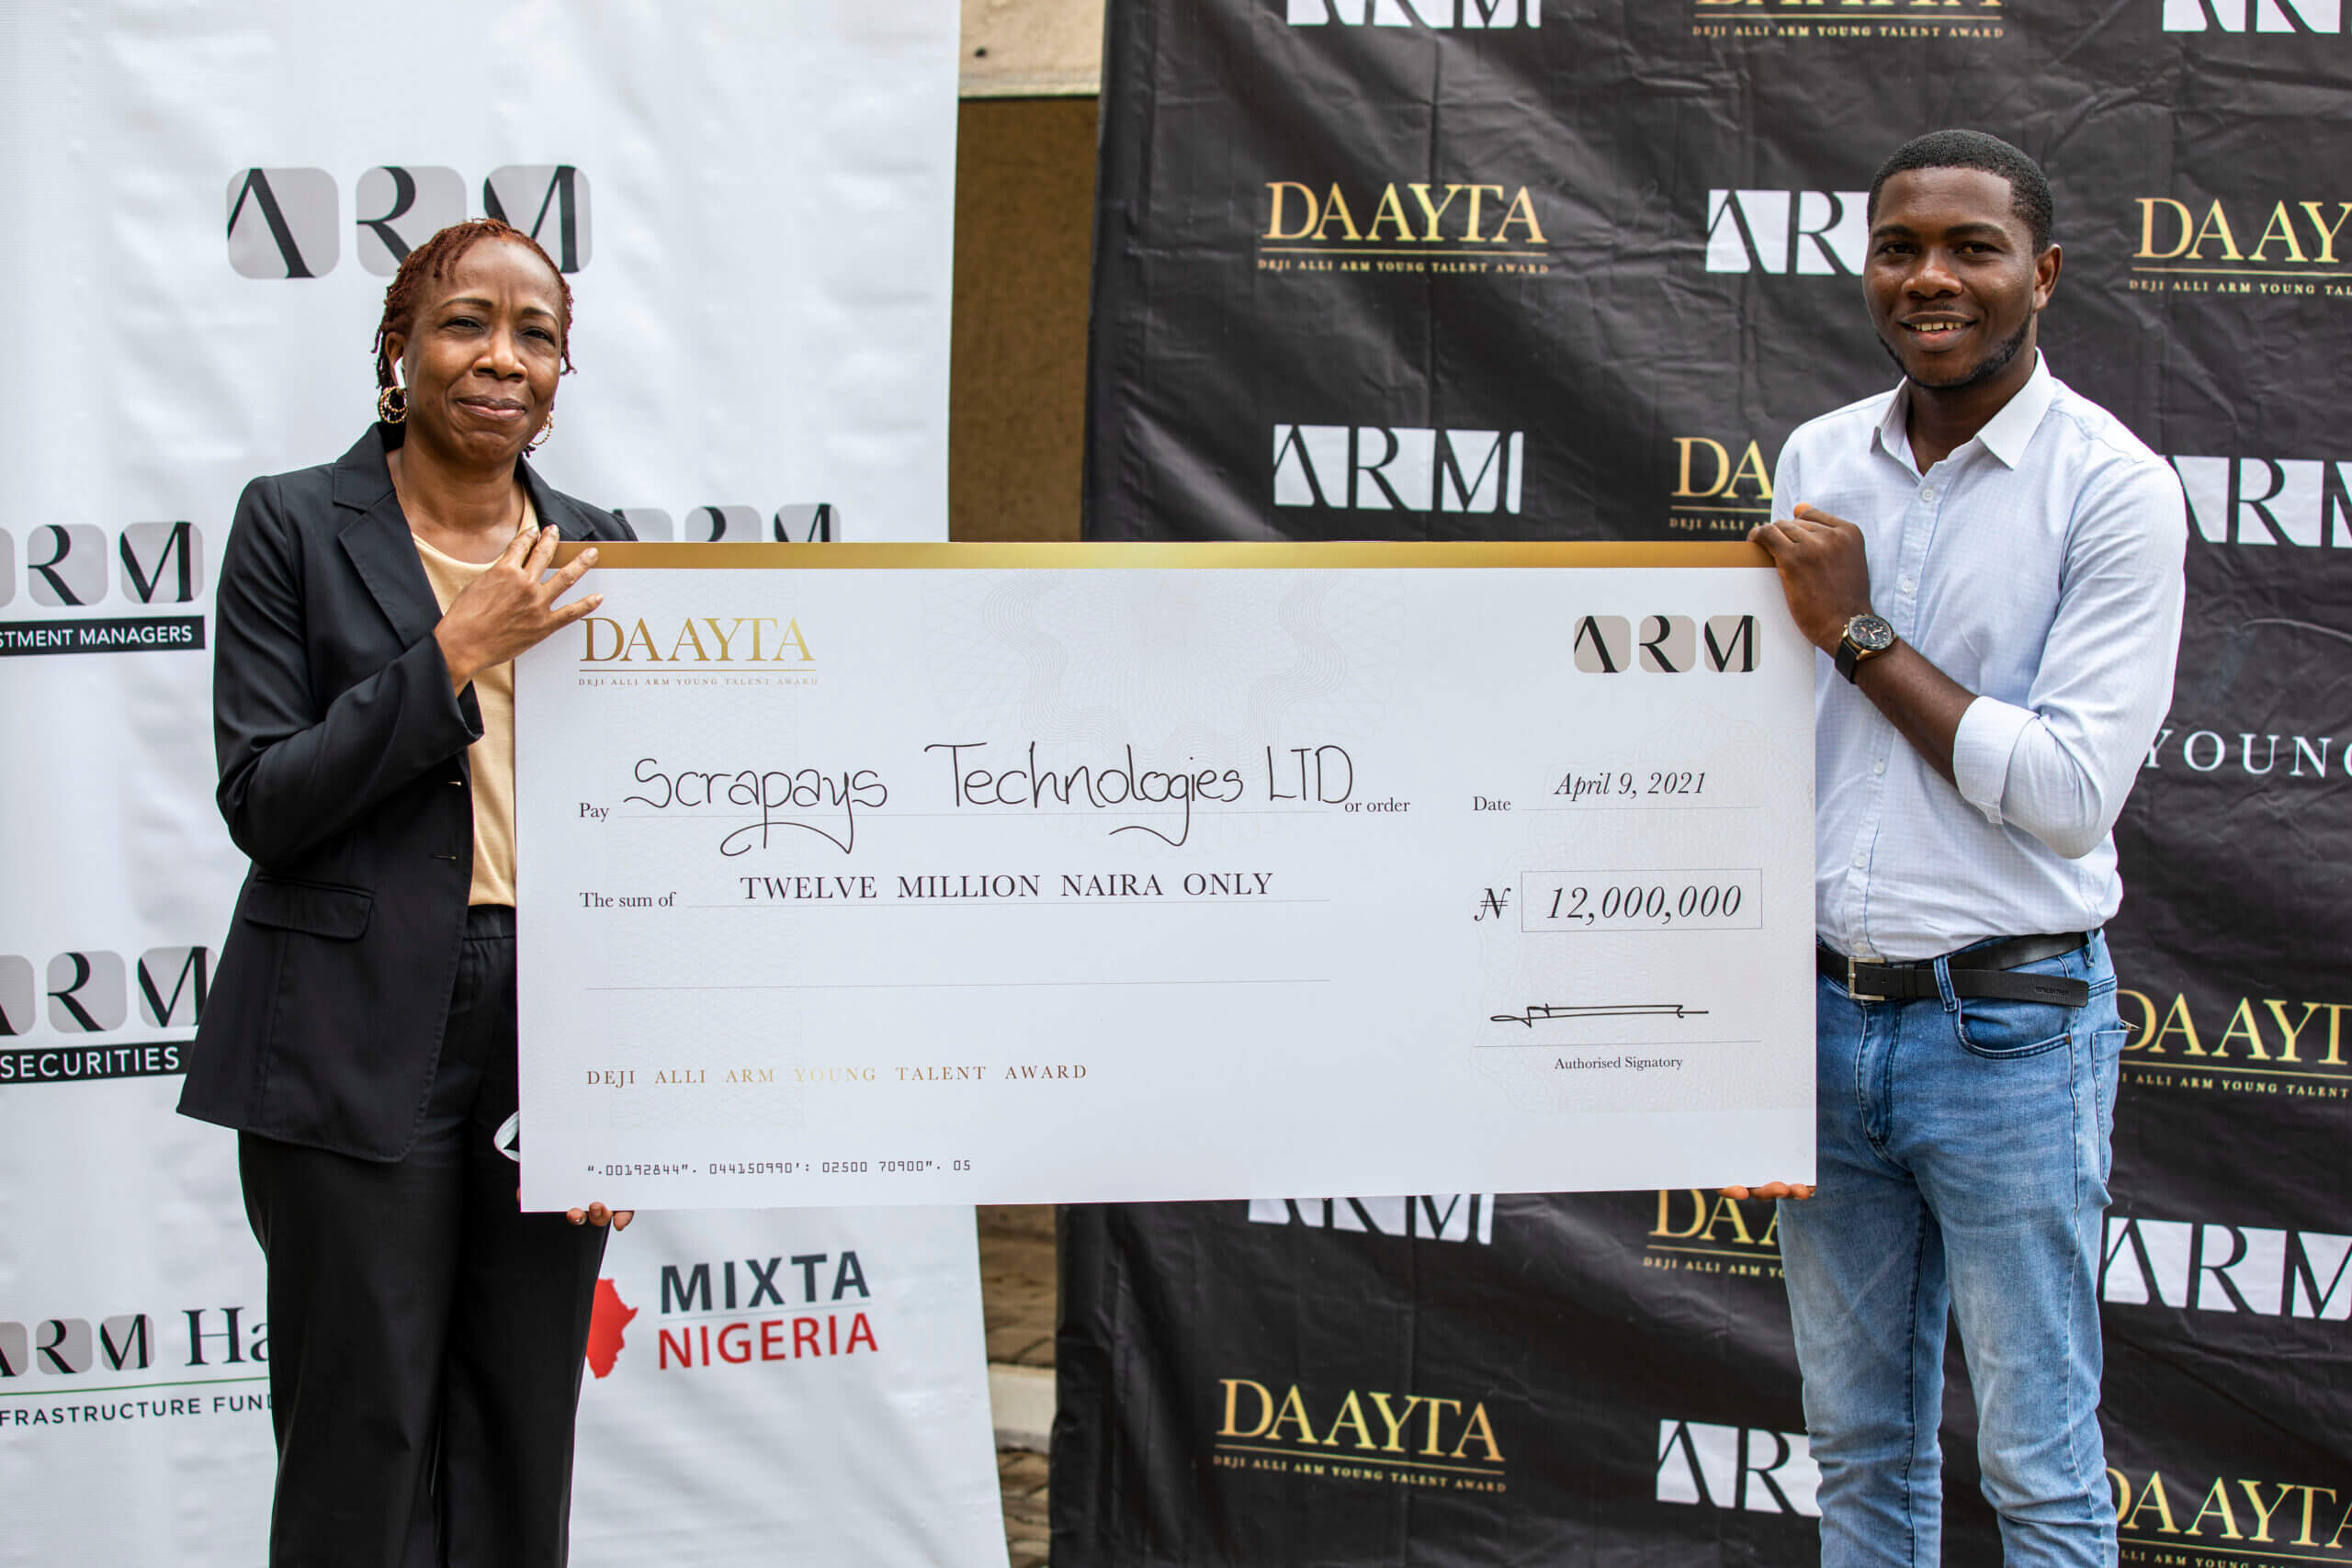 ARM wraps up DAAYTA 2021, announces winner of ₦12m grant